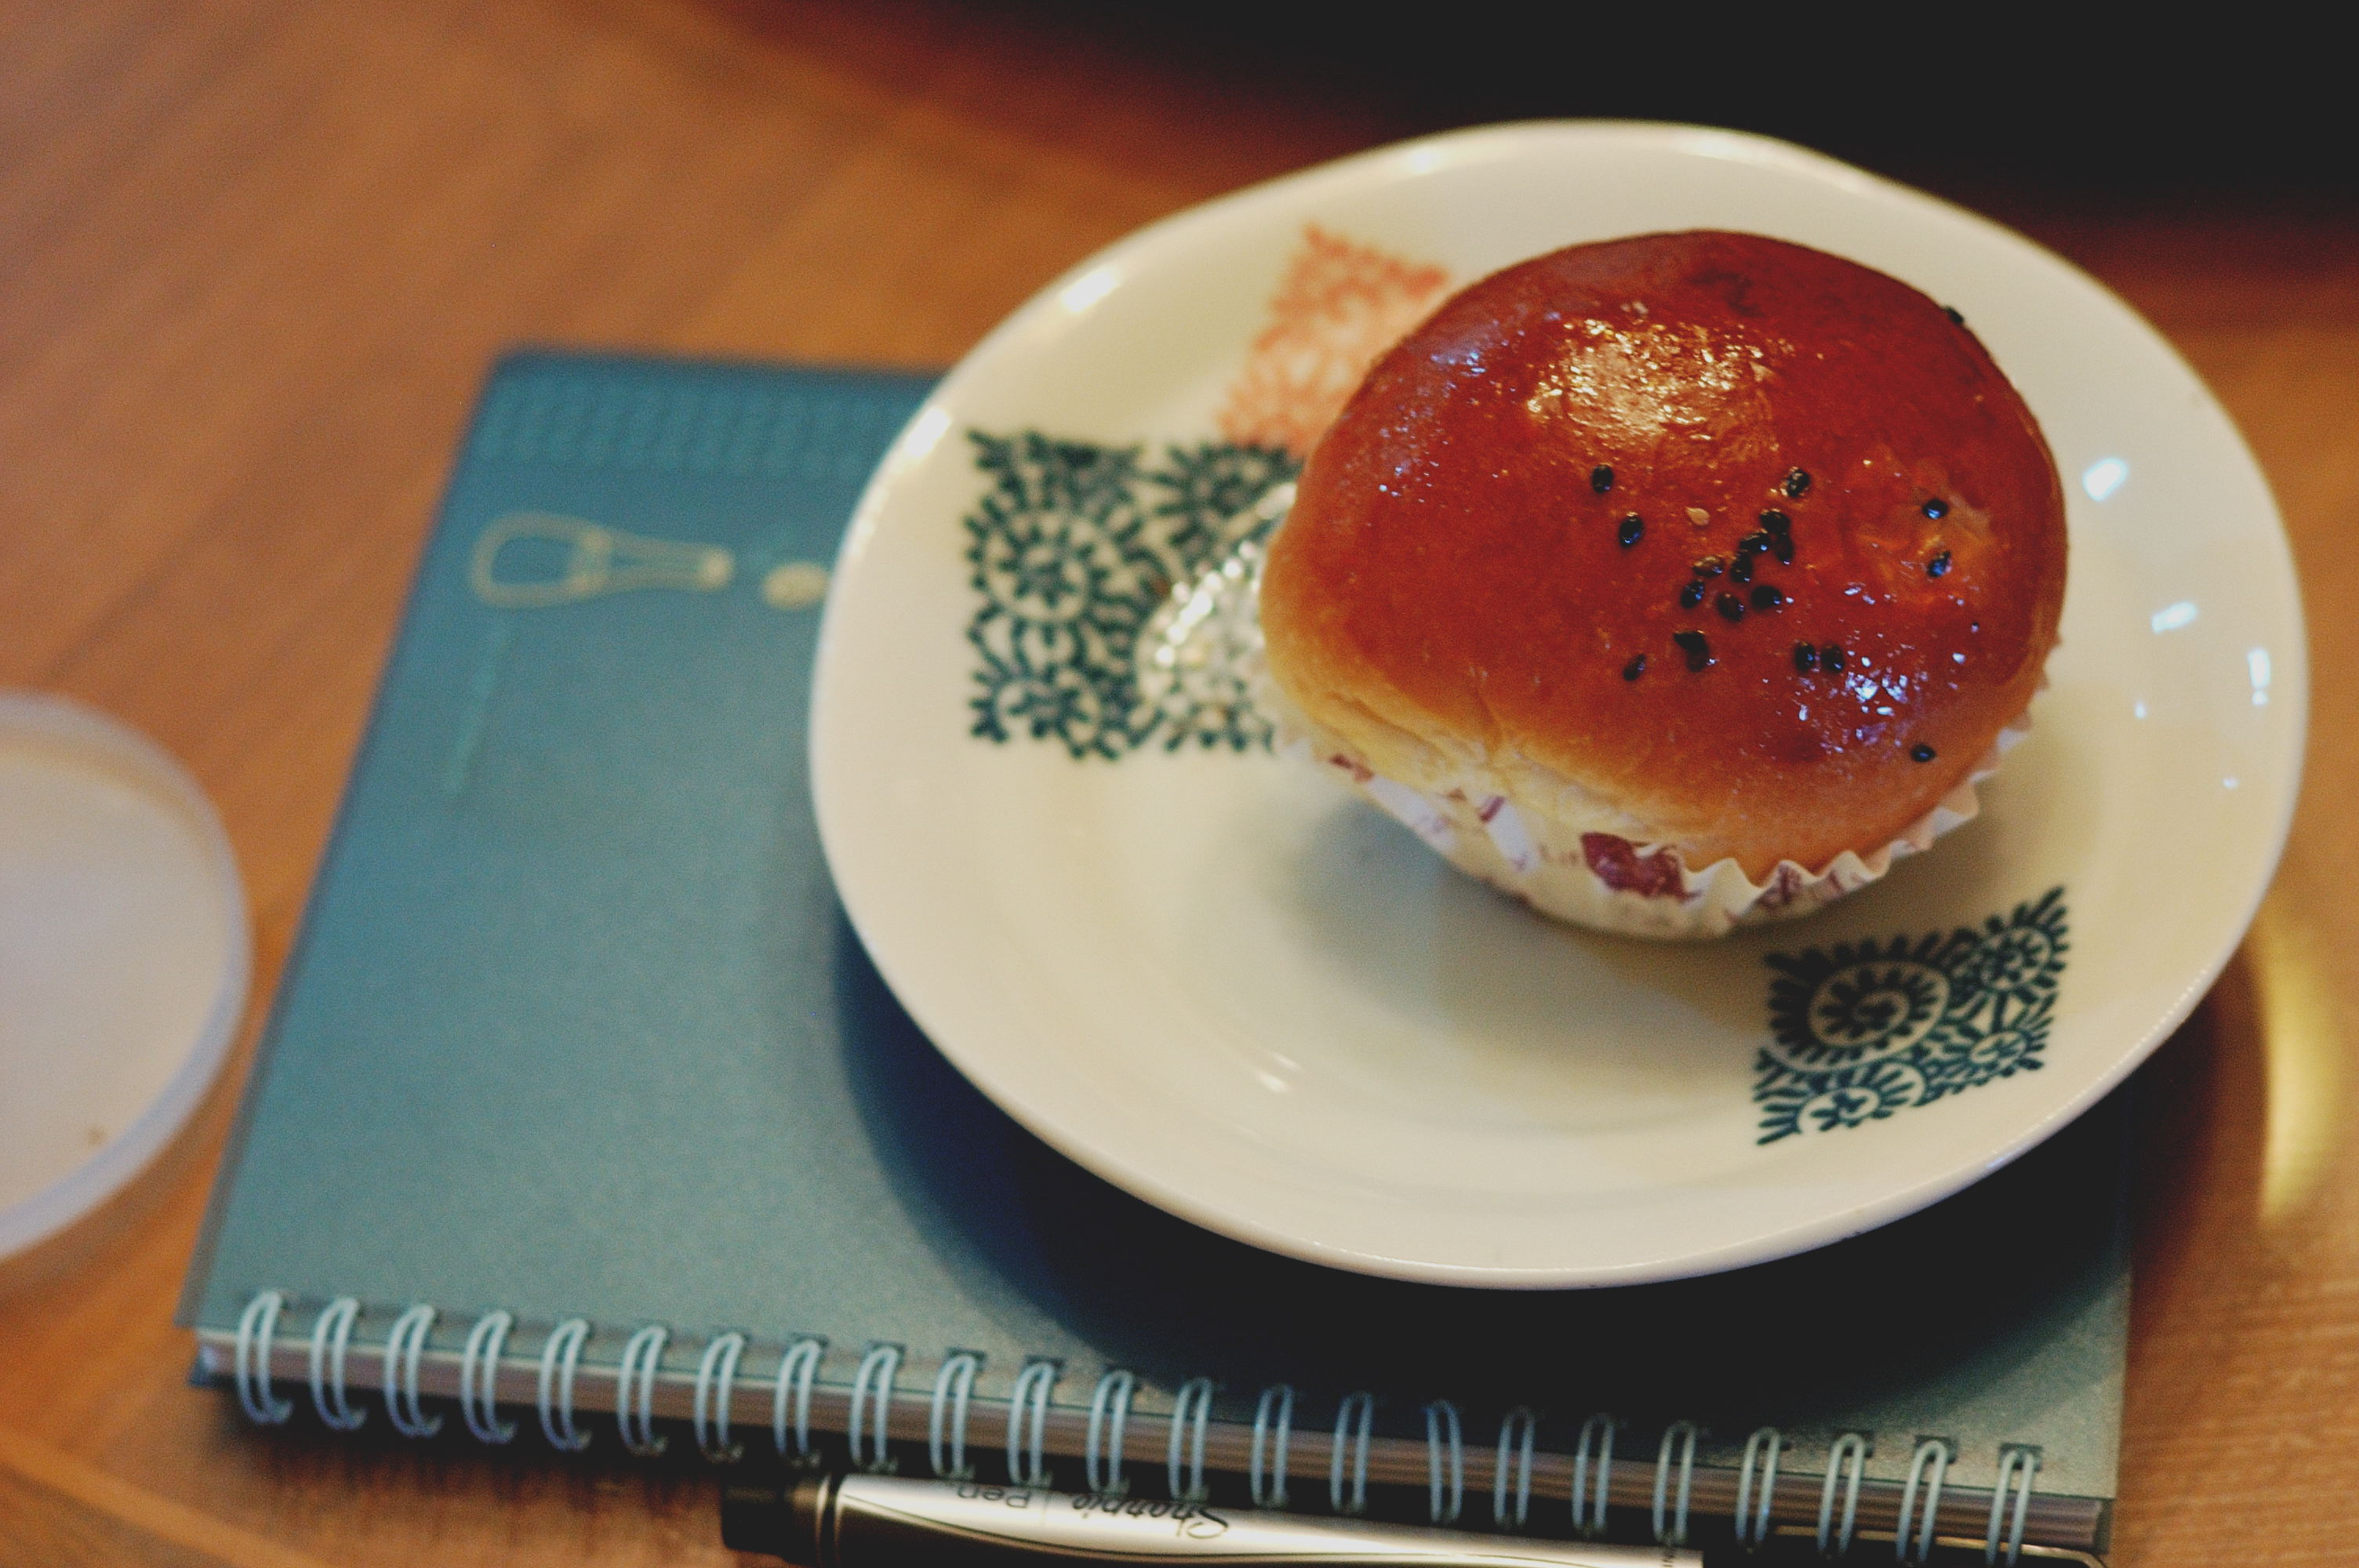 284/365: Breakfast and Journal